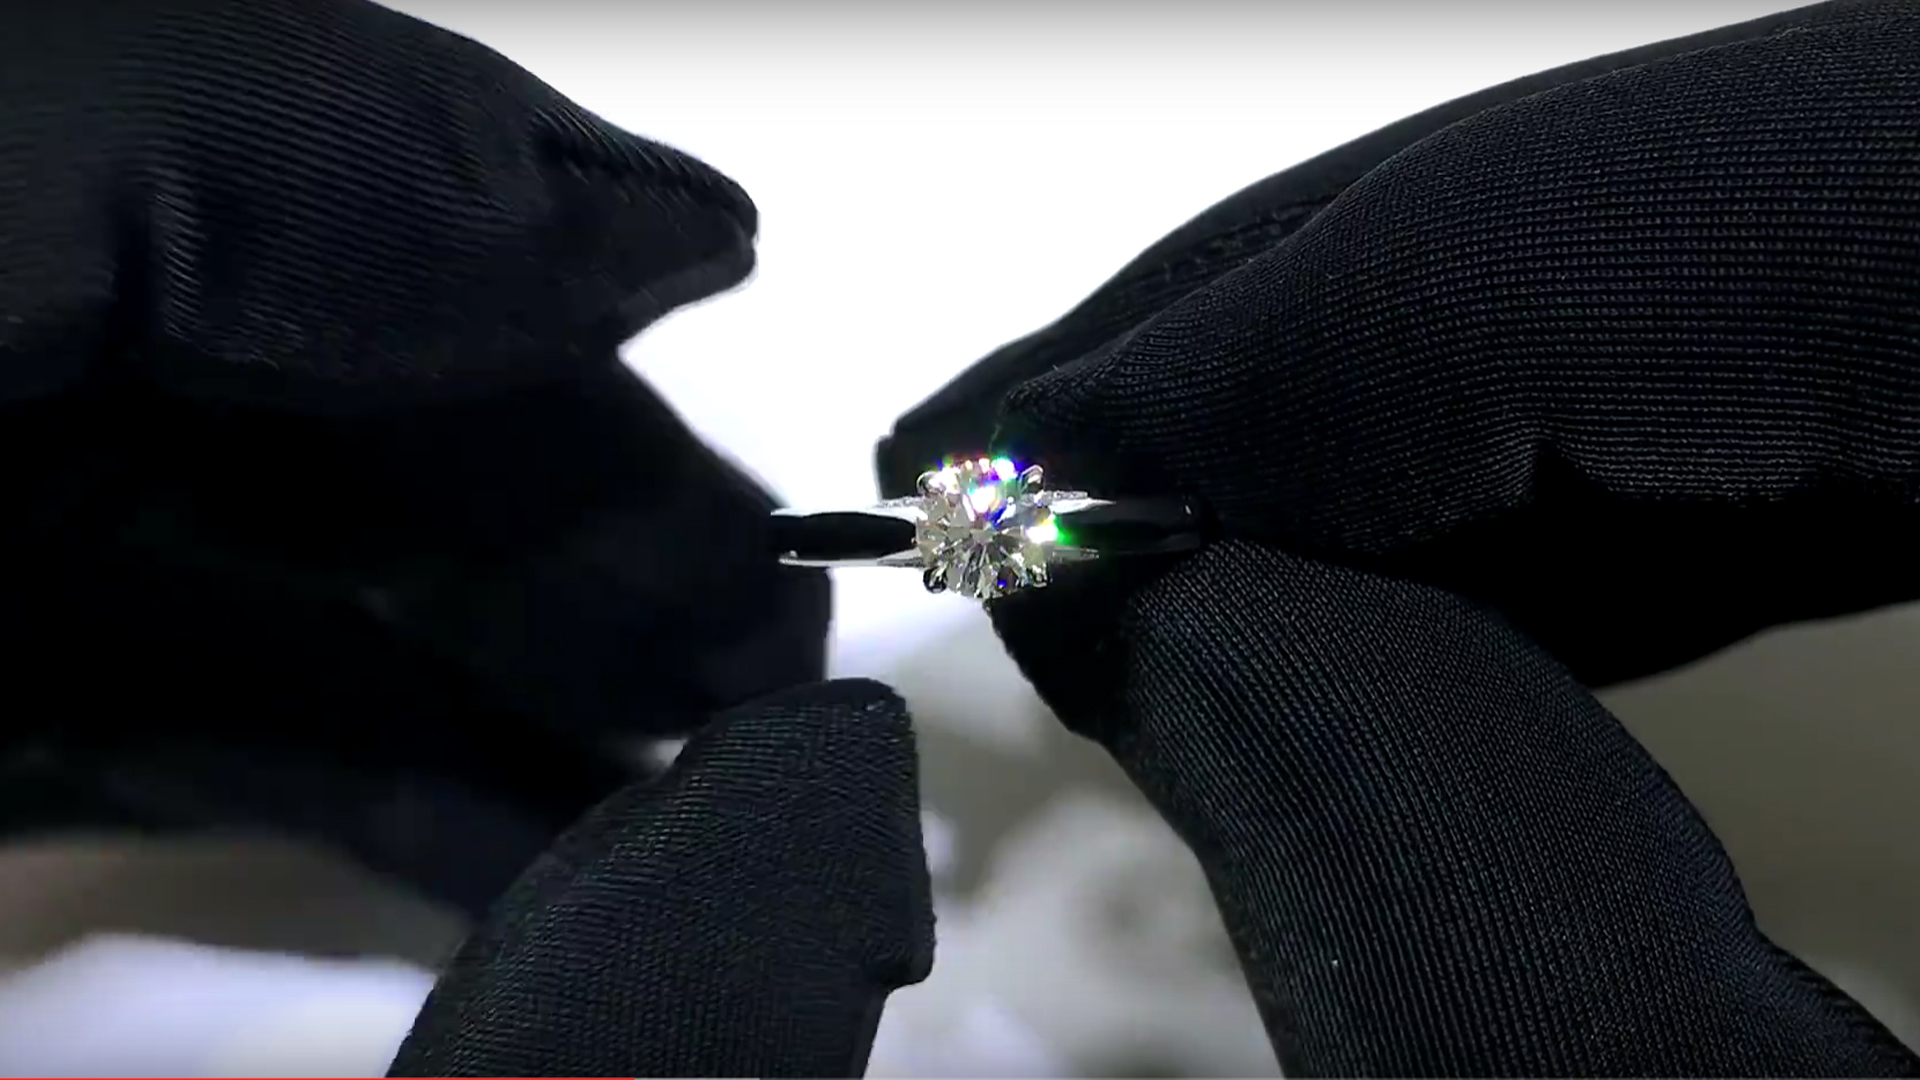 A Solasfera diamond ring